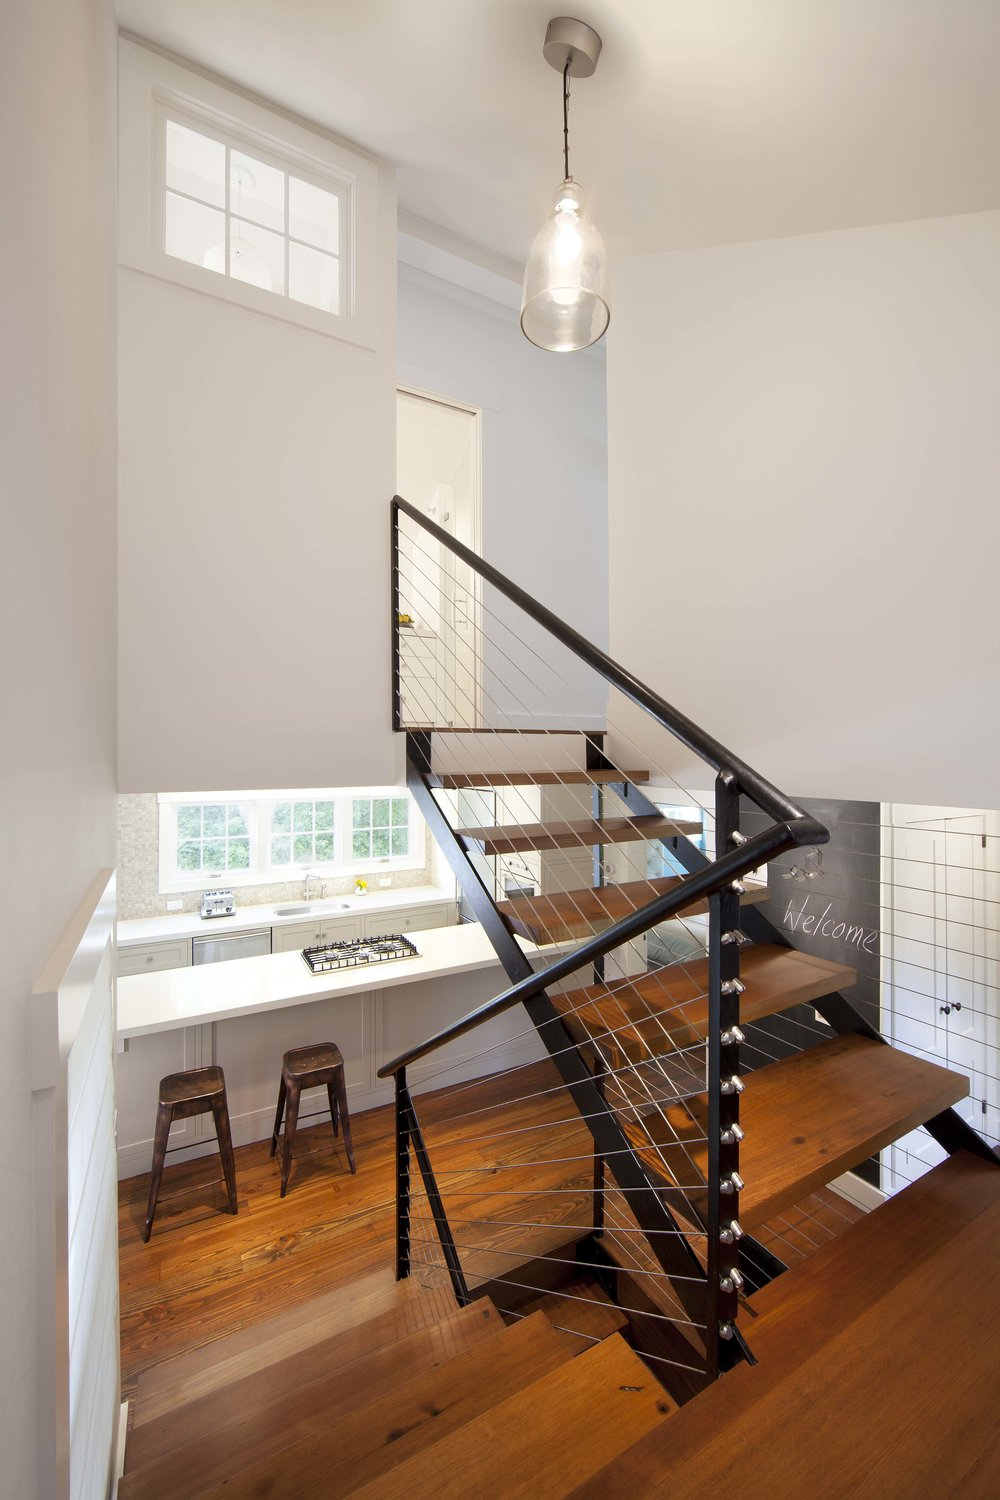 Custom steel staircase with floating wood treads.